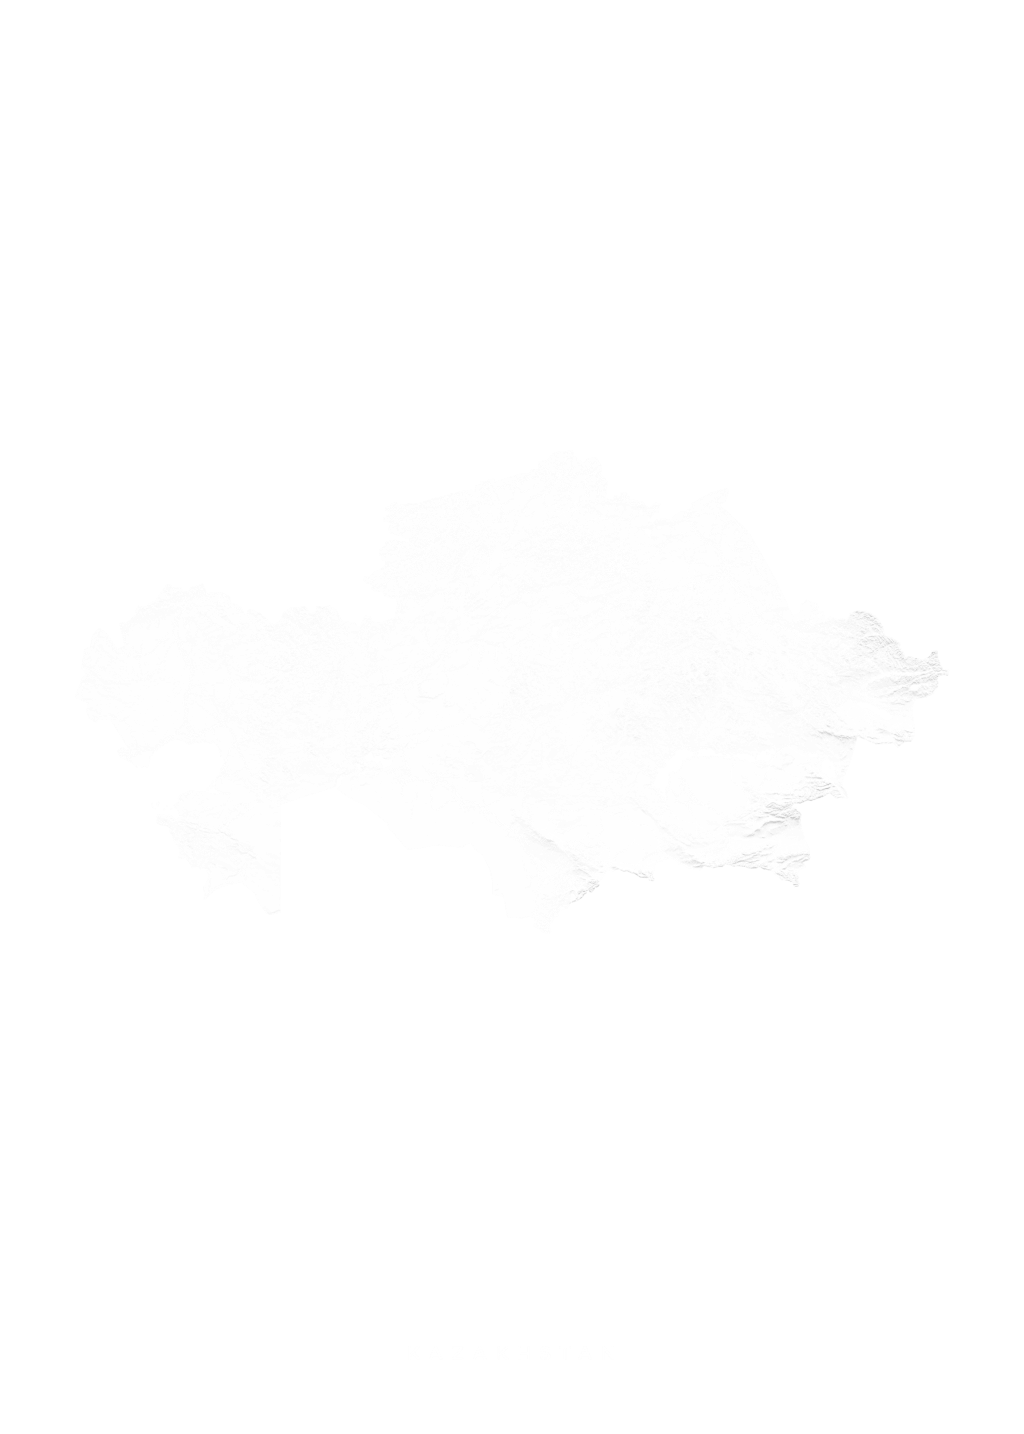 Kazakhstan wall map